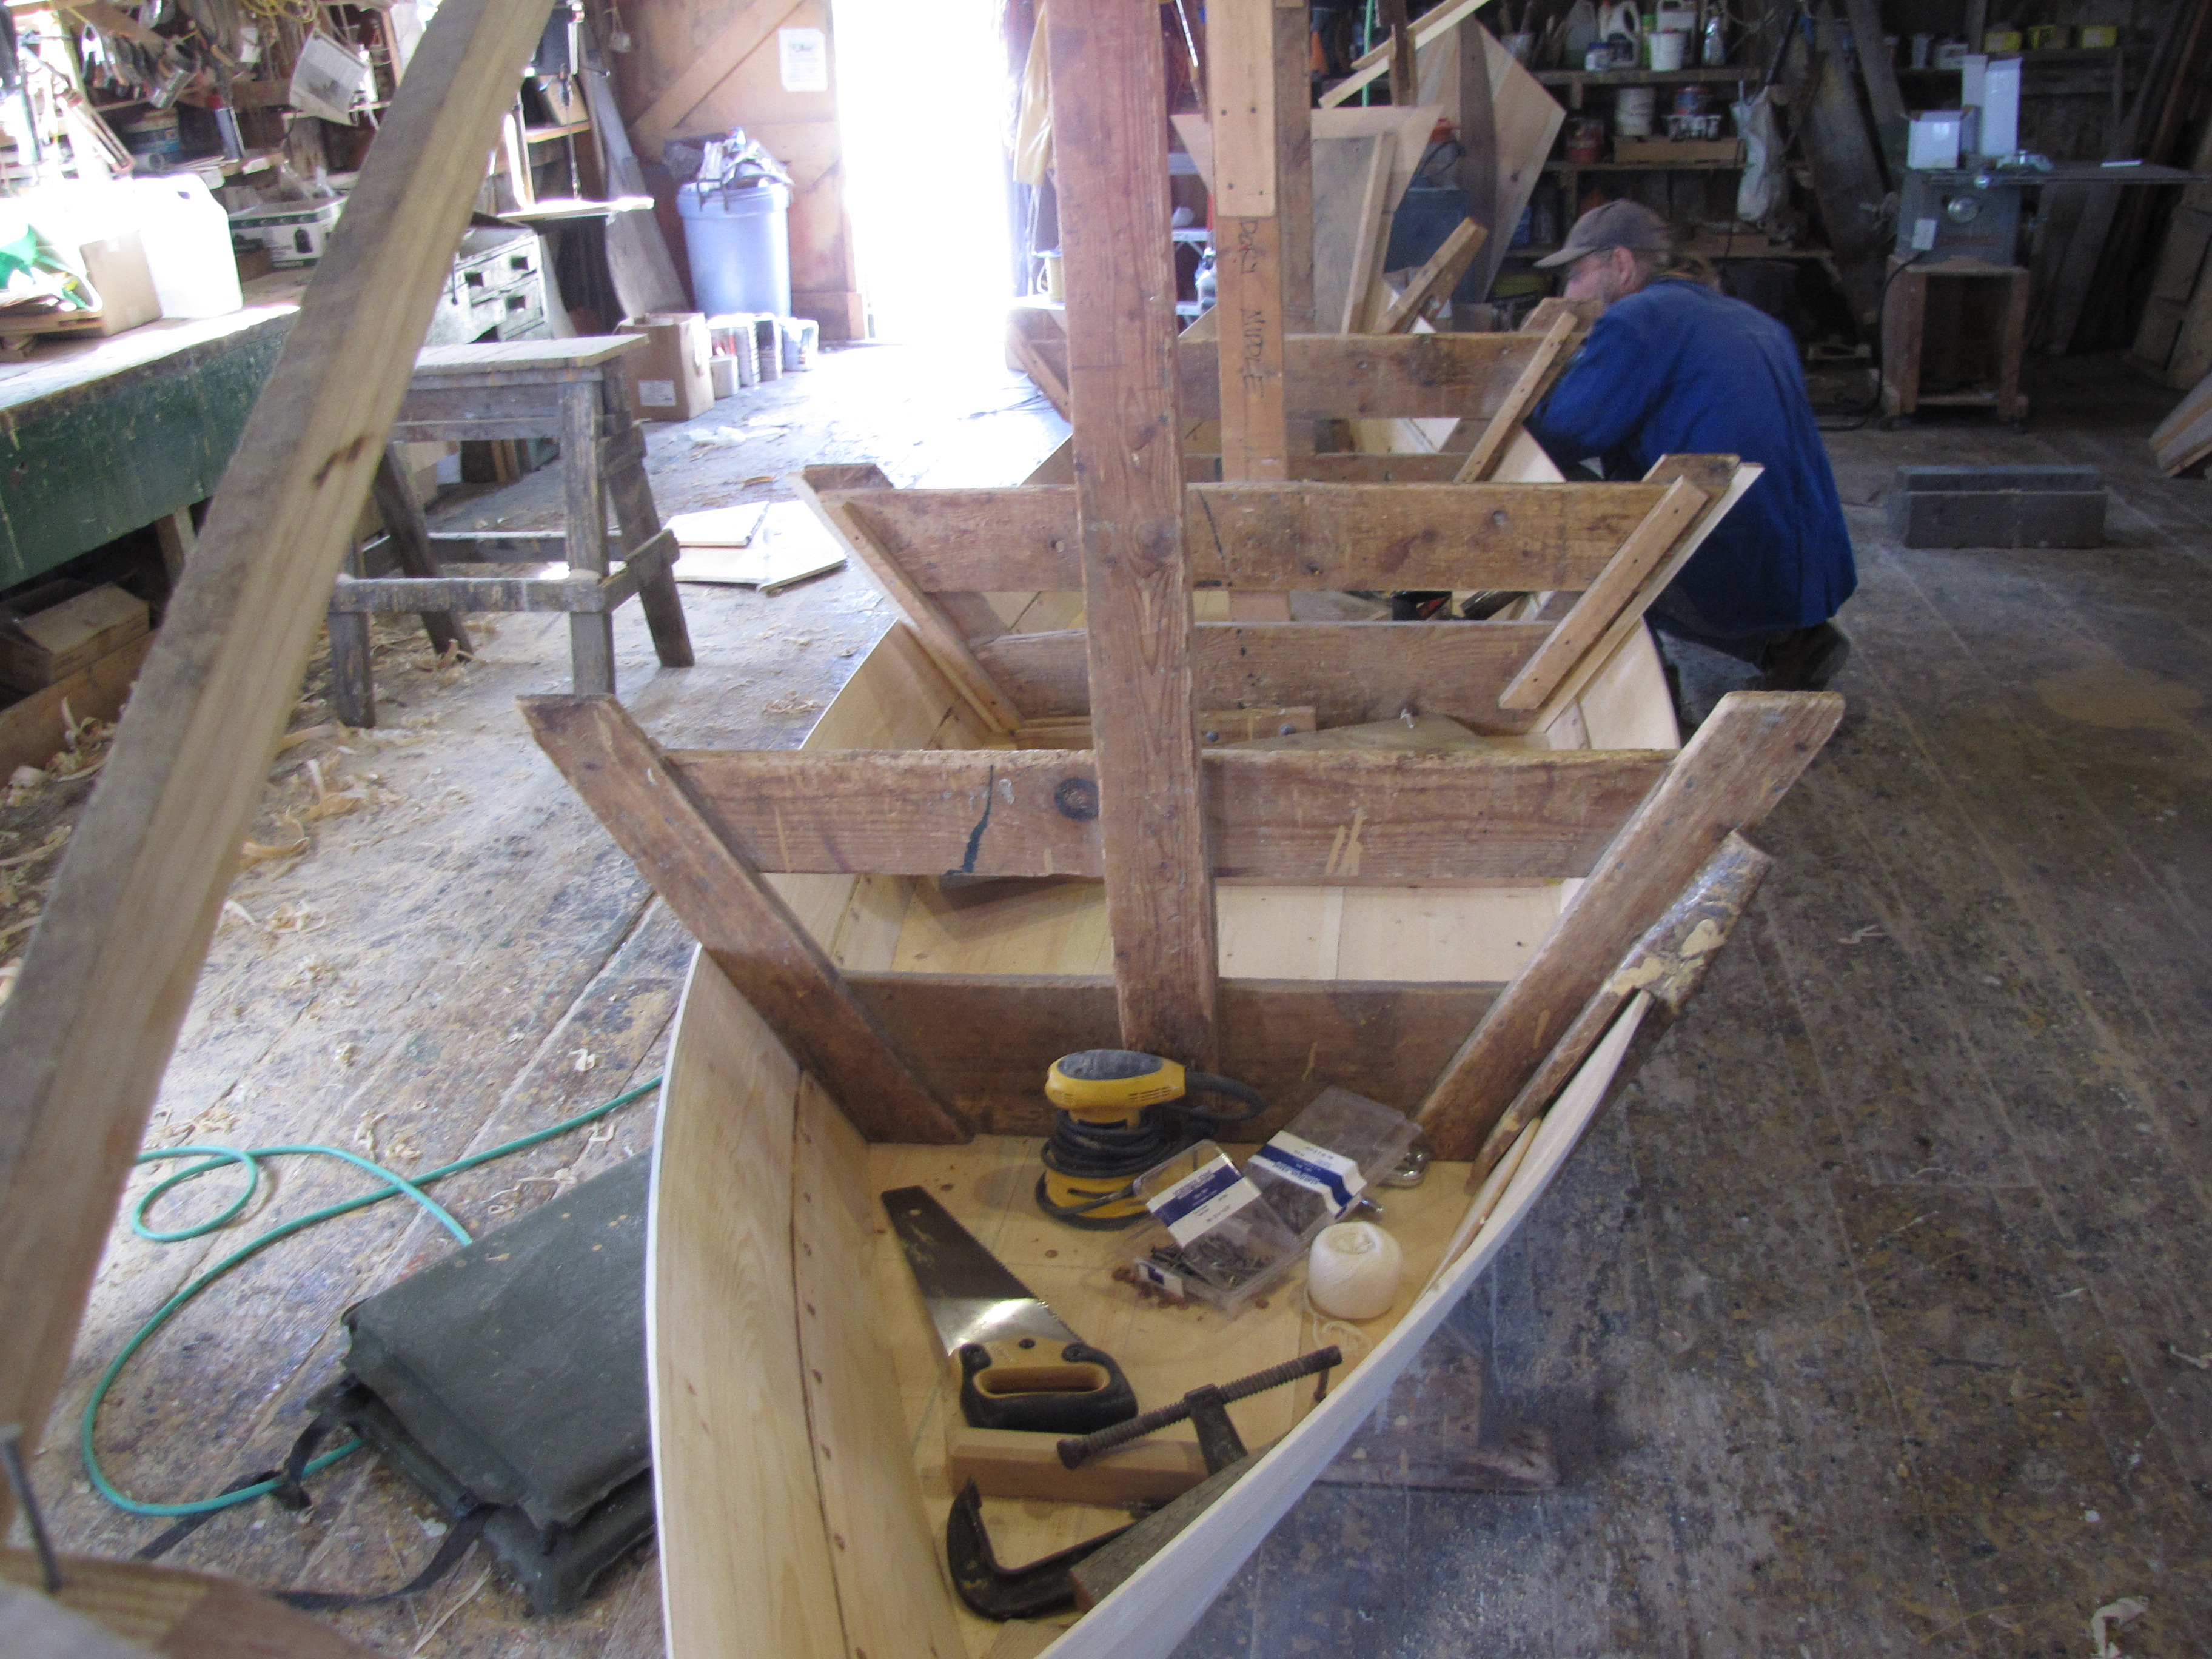 diy adirondack chair kit chaise lounge chairs indoors plans for wood outboard motor stand | testy39xqi